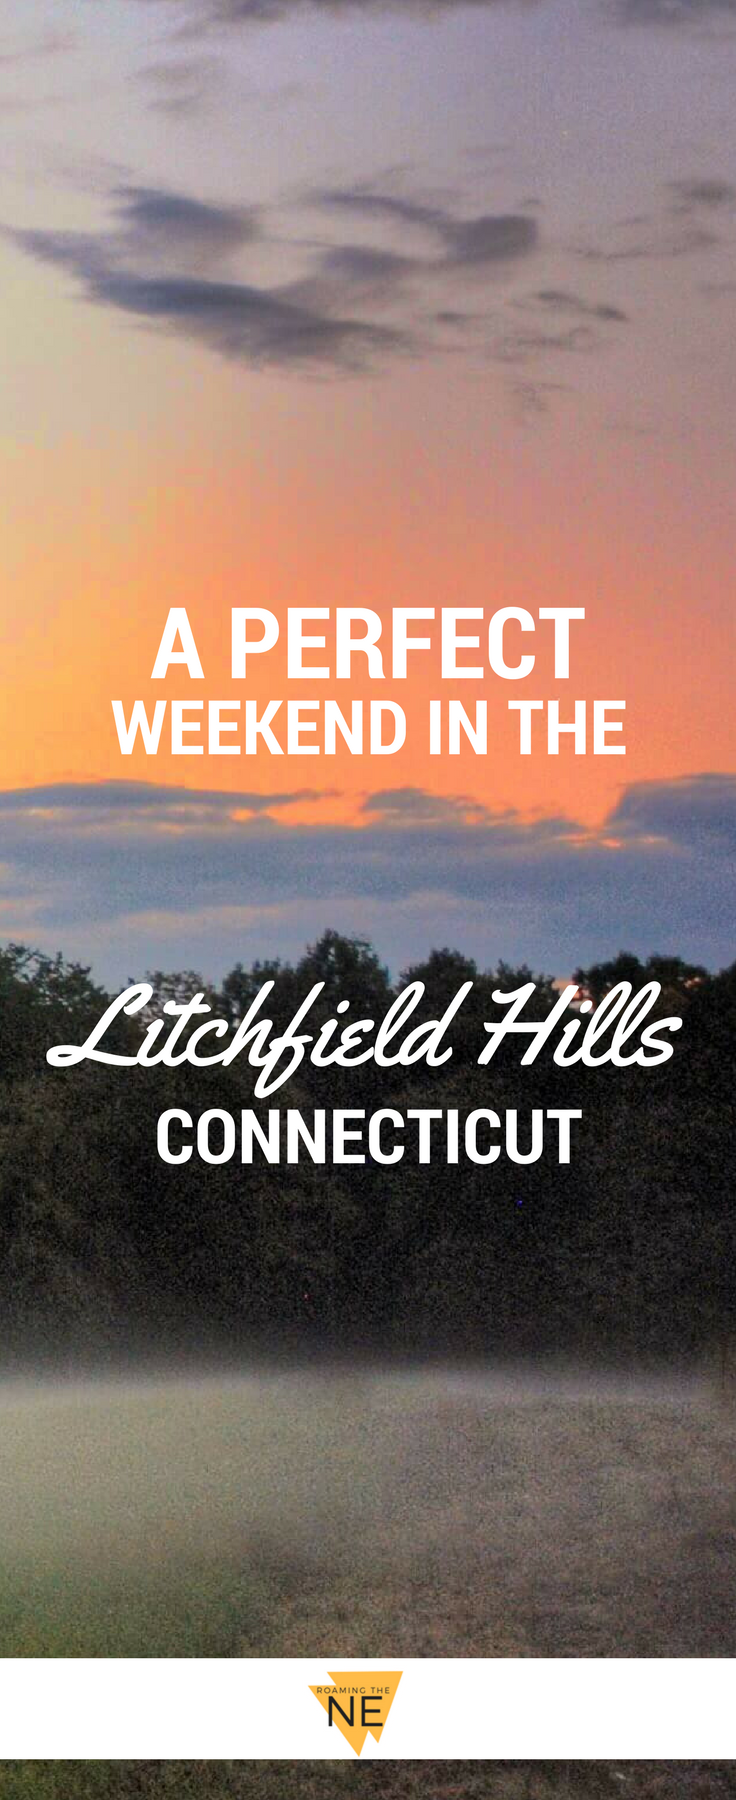 A Perfect Weekend in the Litchfield Hills.png